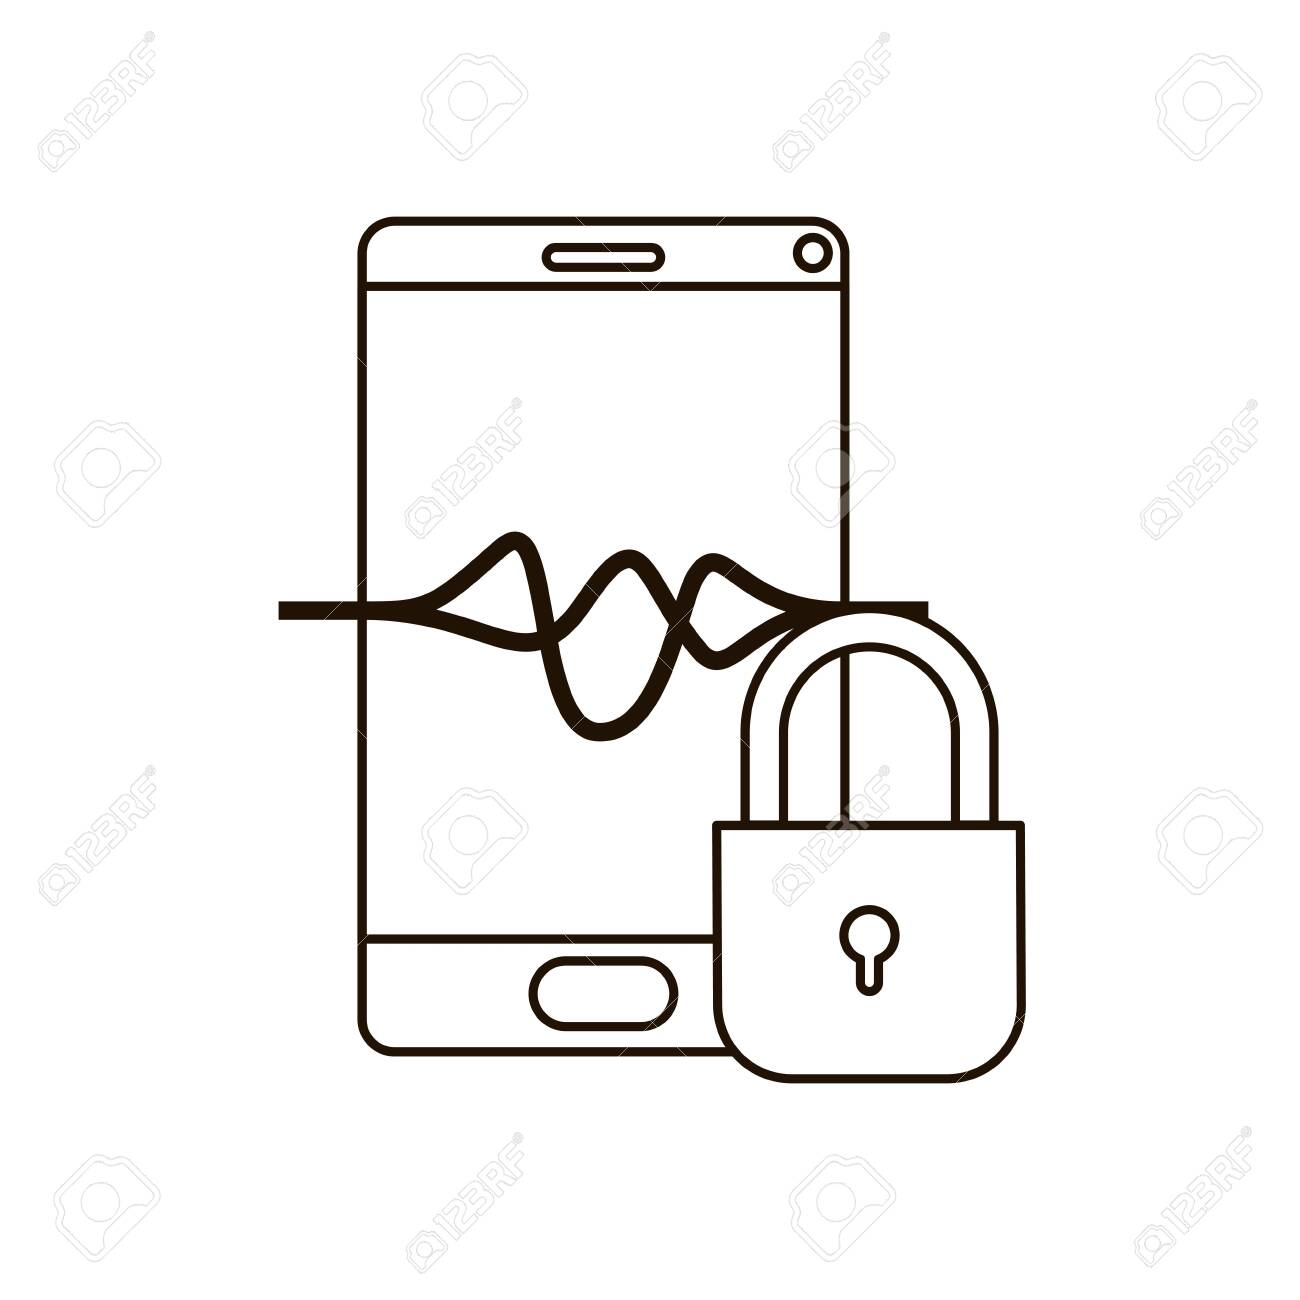 smartphone device with padlocked icon vector illustration design - 118869318